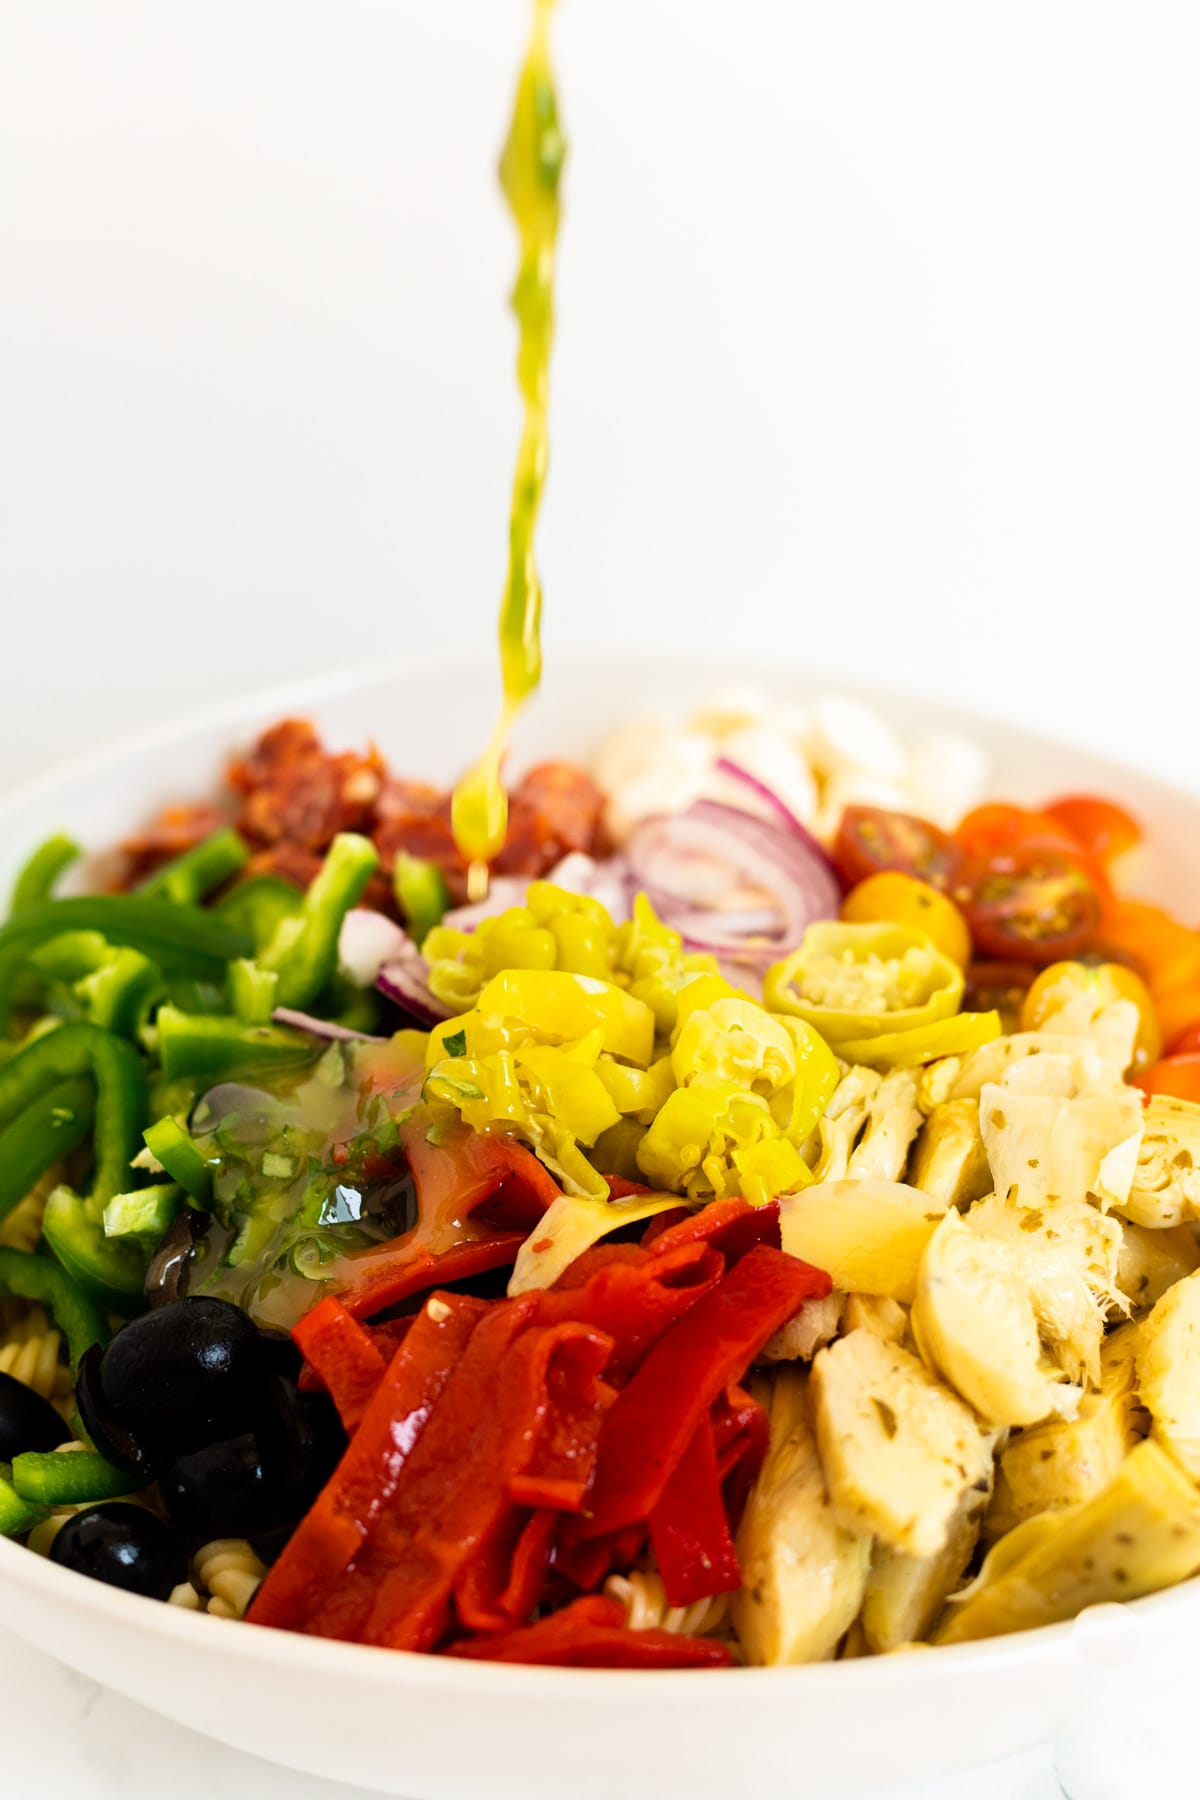 Pouring salad dressing over pasta salad.